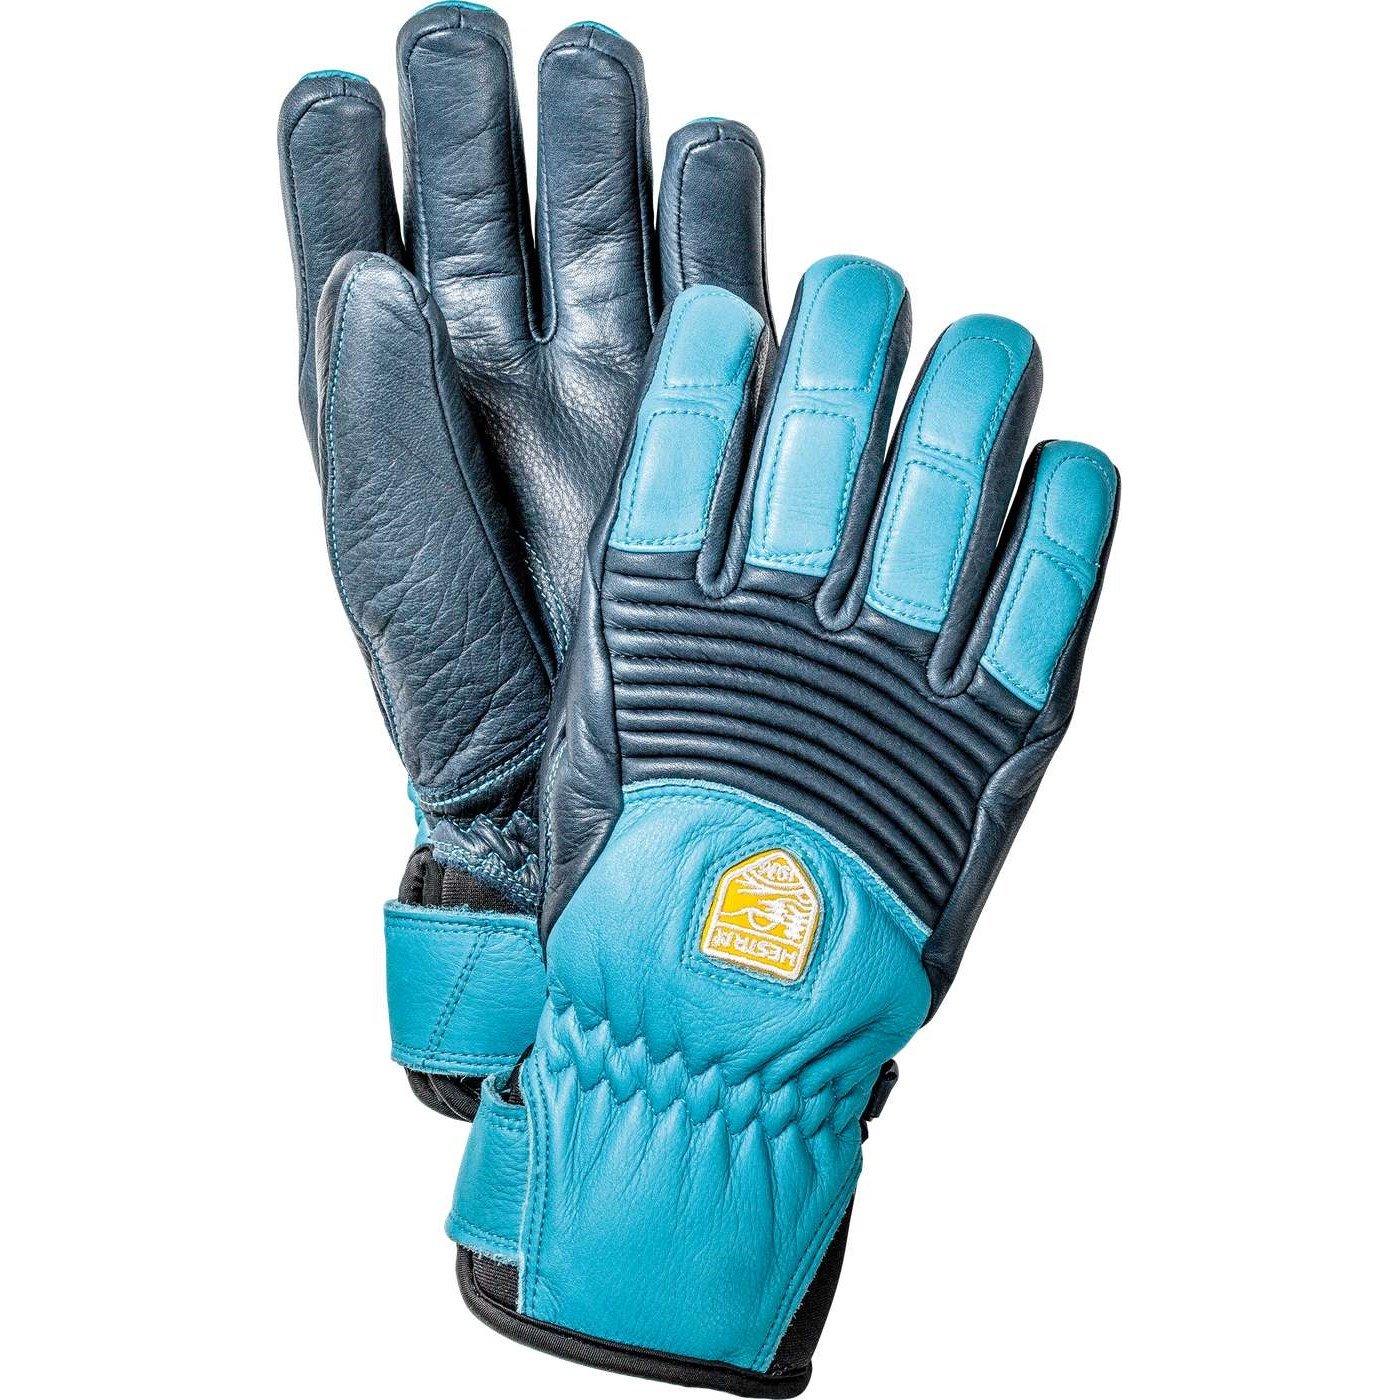 Hestra mens gloves - Hestra Mens Gloves 22